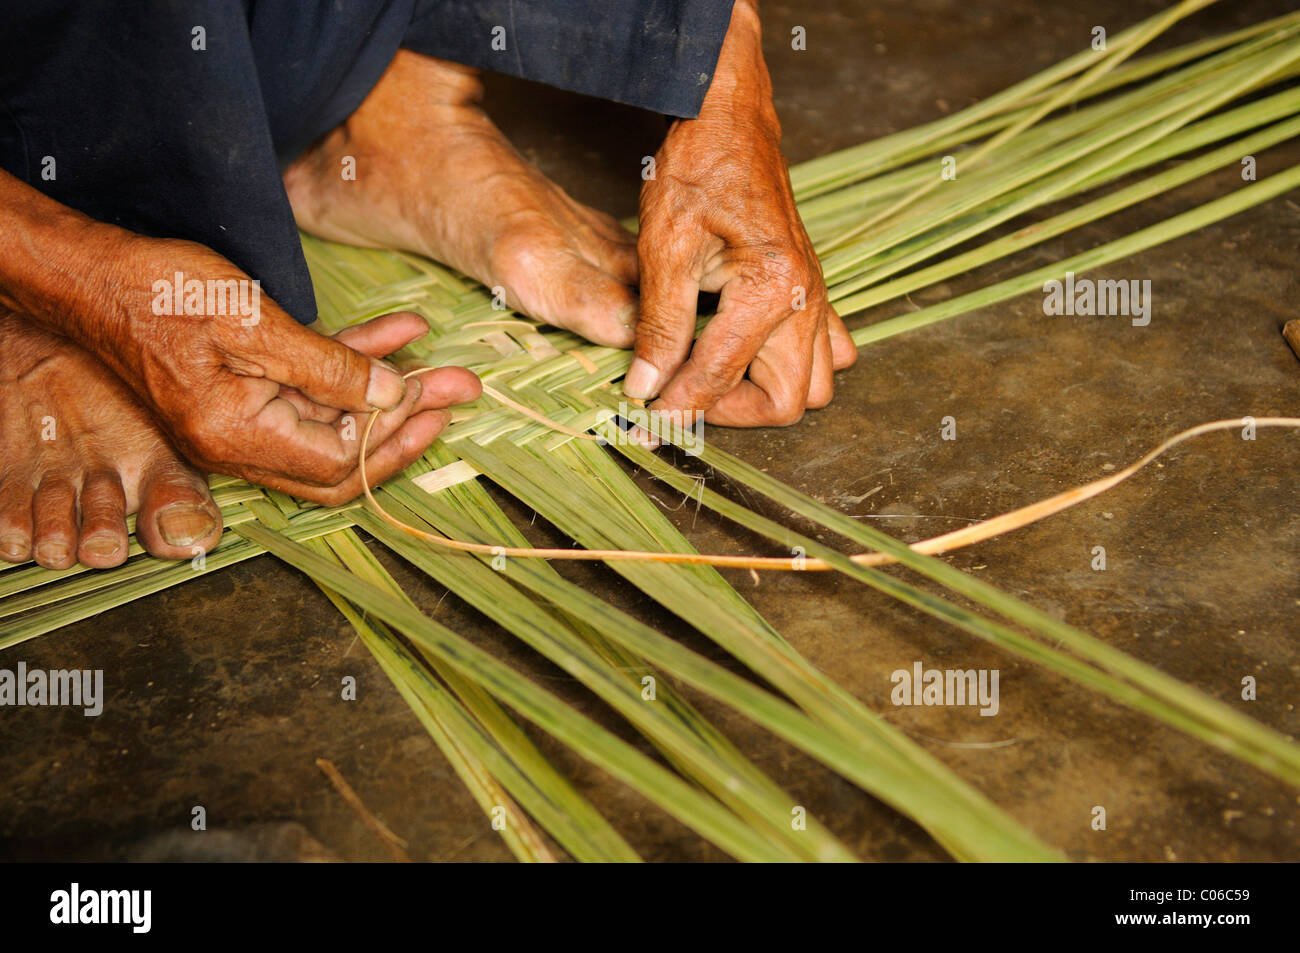 Basket-weaving, Vietnam, Asia - Stock Image